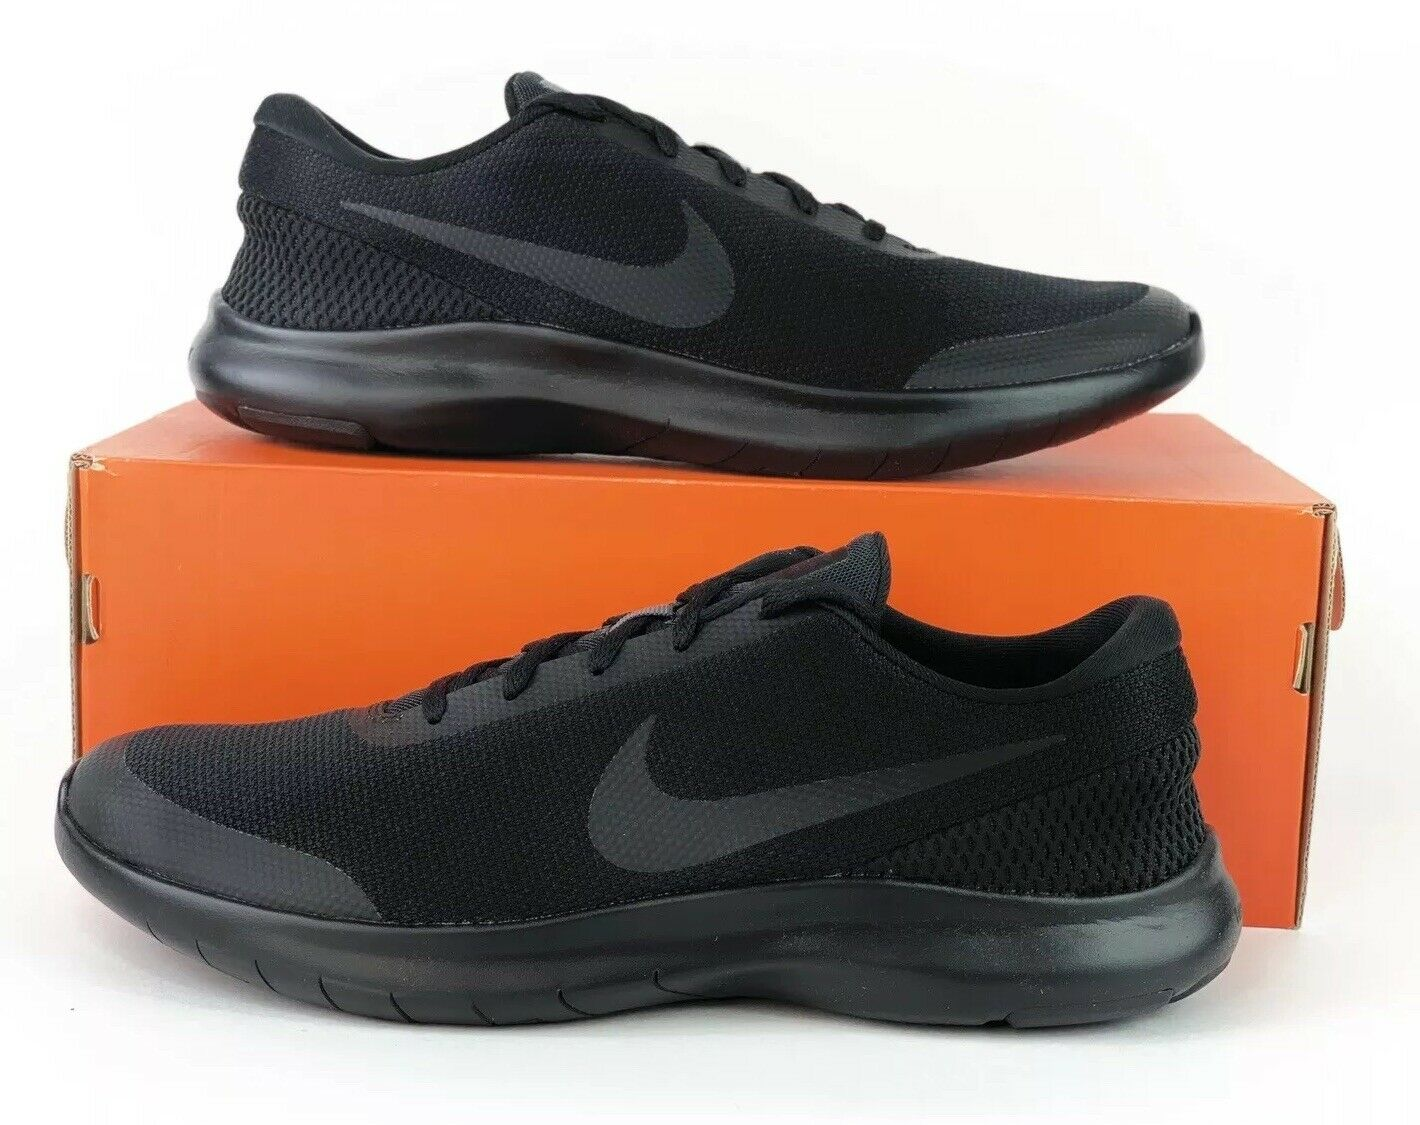 Nike Flex Experience RN 7 Running shoes Black Anthracite 908985-002 Sz 11.5